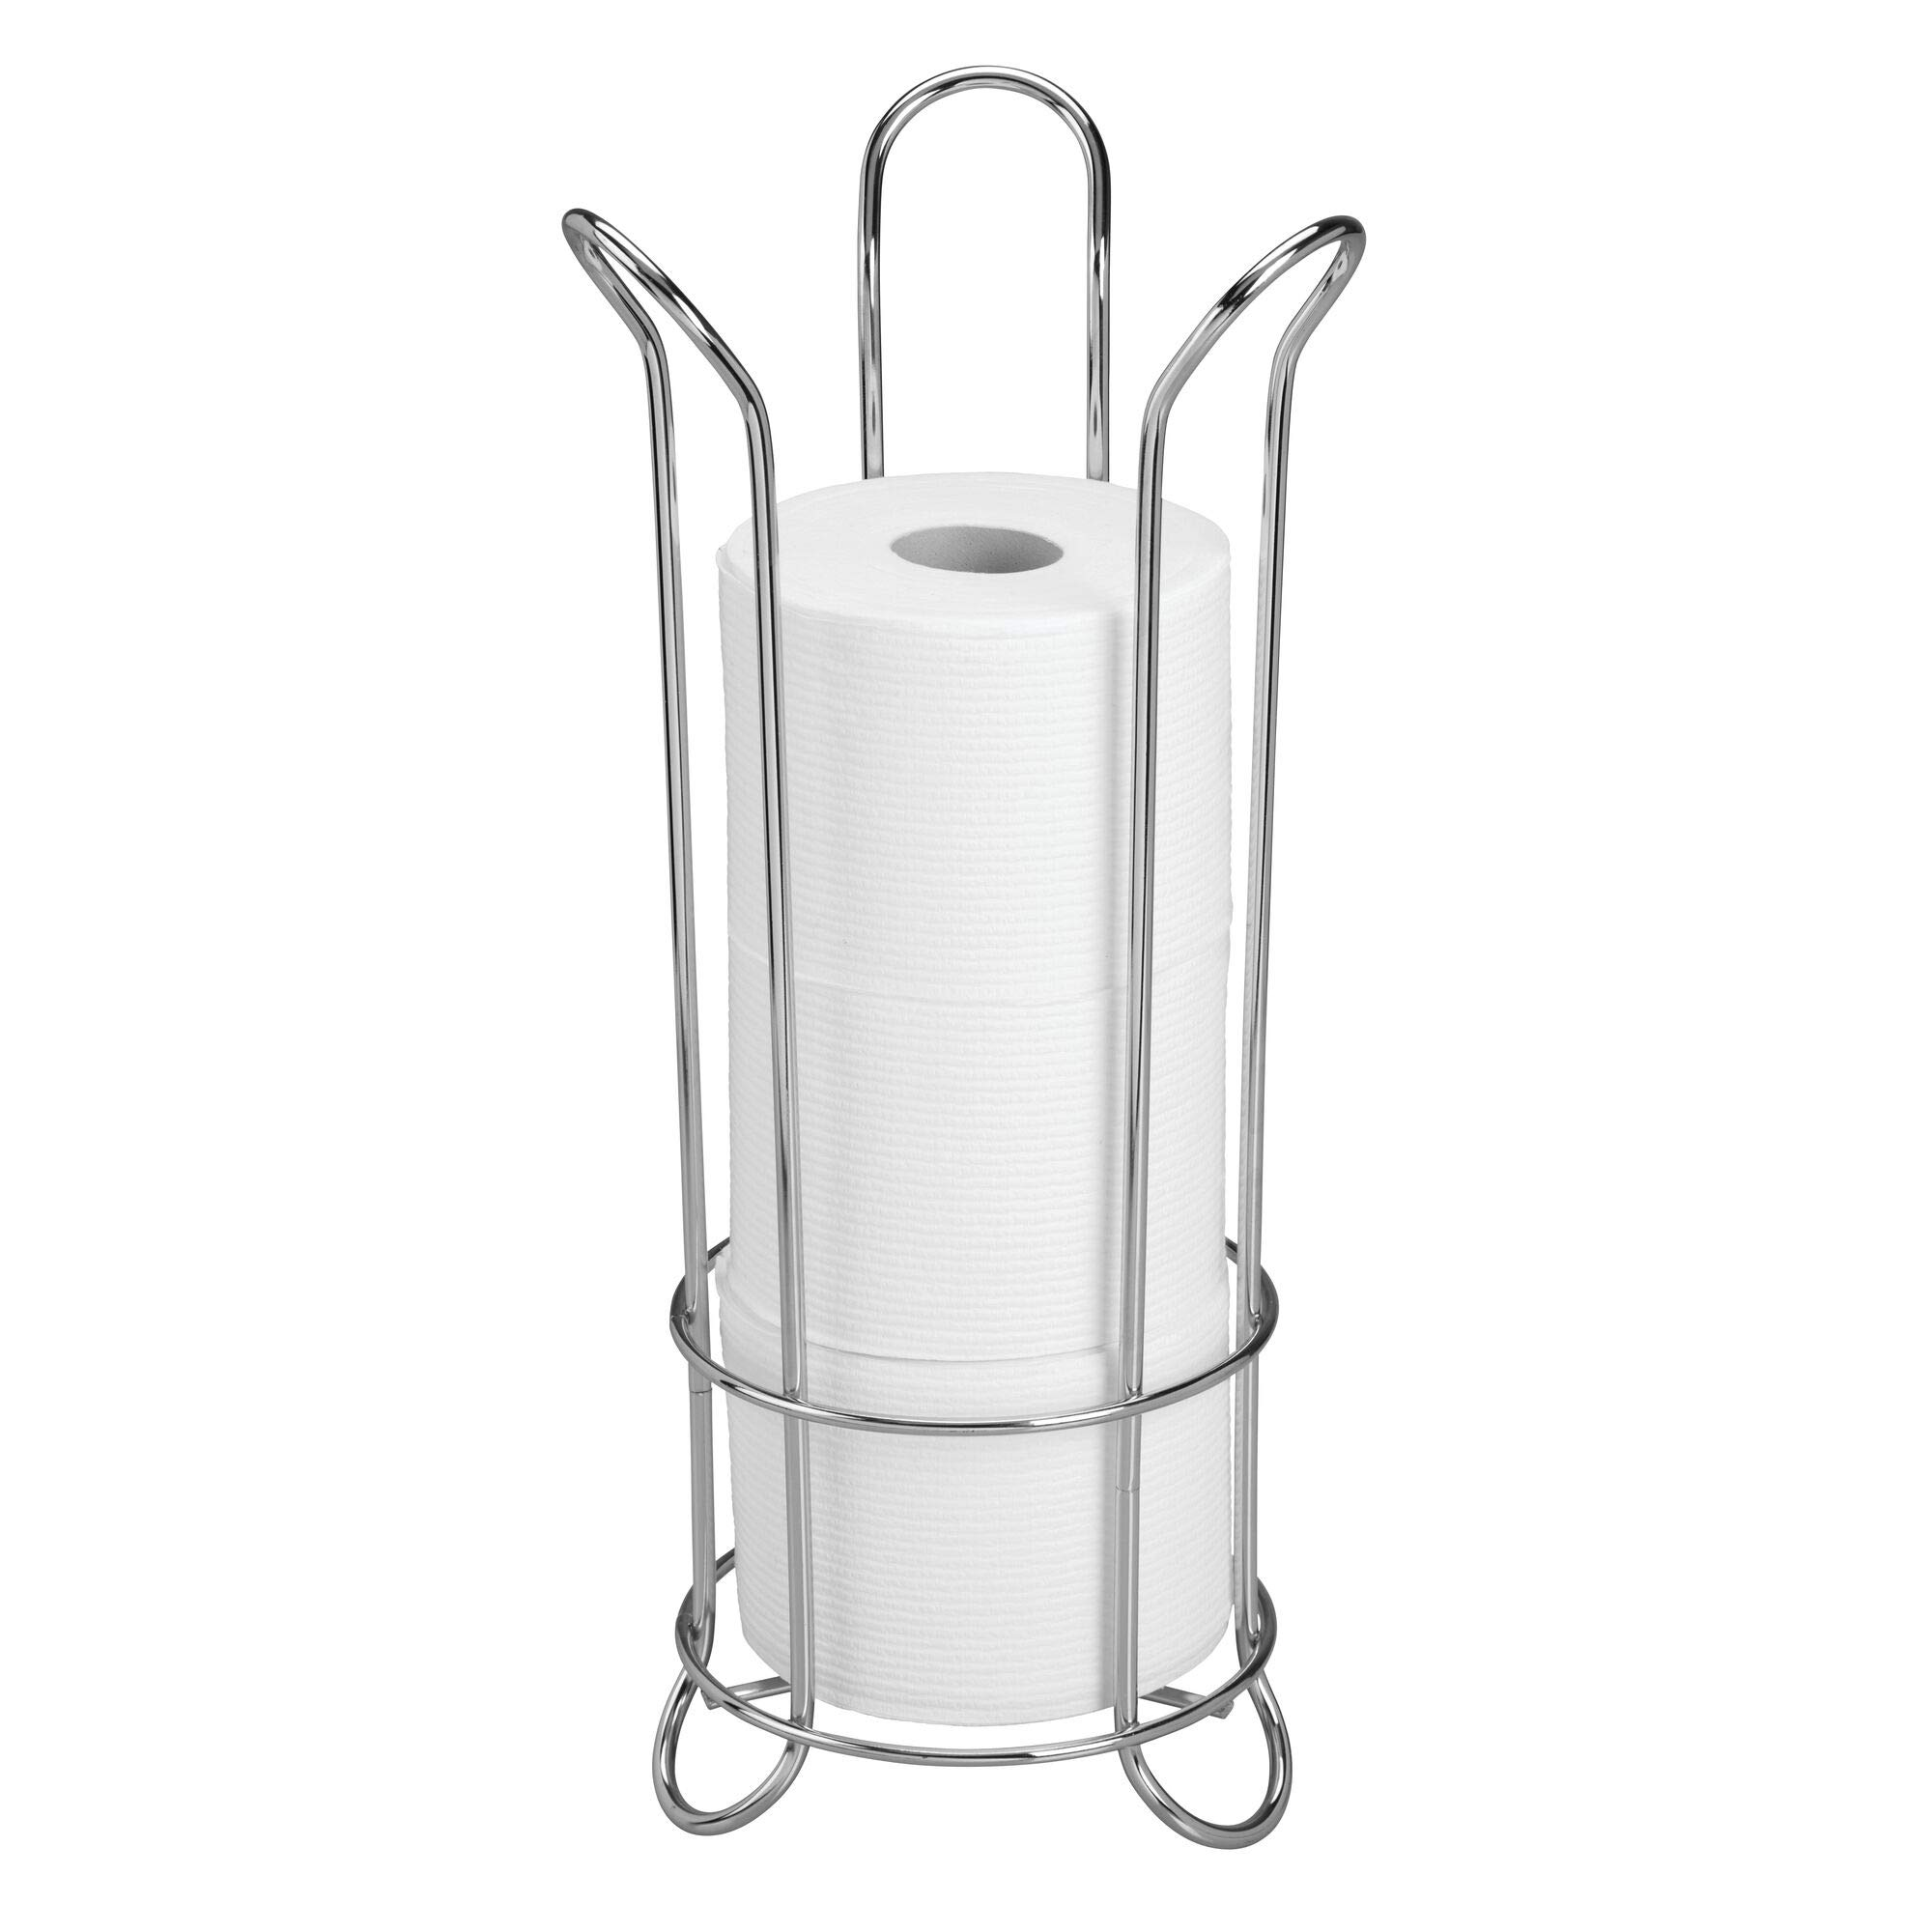 iDesign Classico Metal Toilet Tissue Roll Reserve Organizer for Bathroom, Compact Organizer, Holds 3 Rolls of Toilet Paper, Chrome